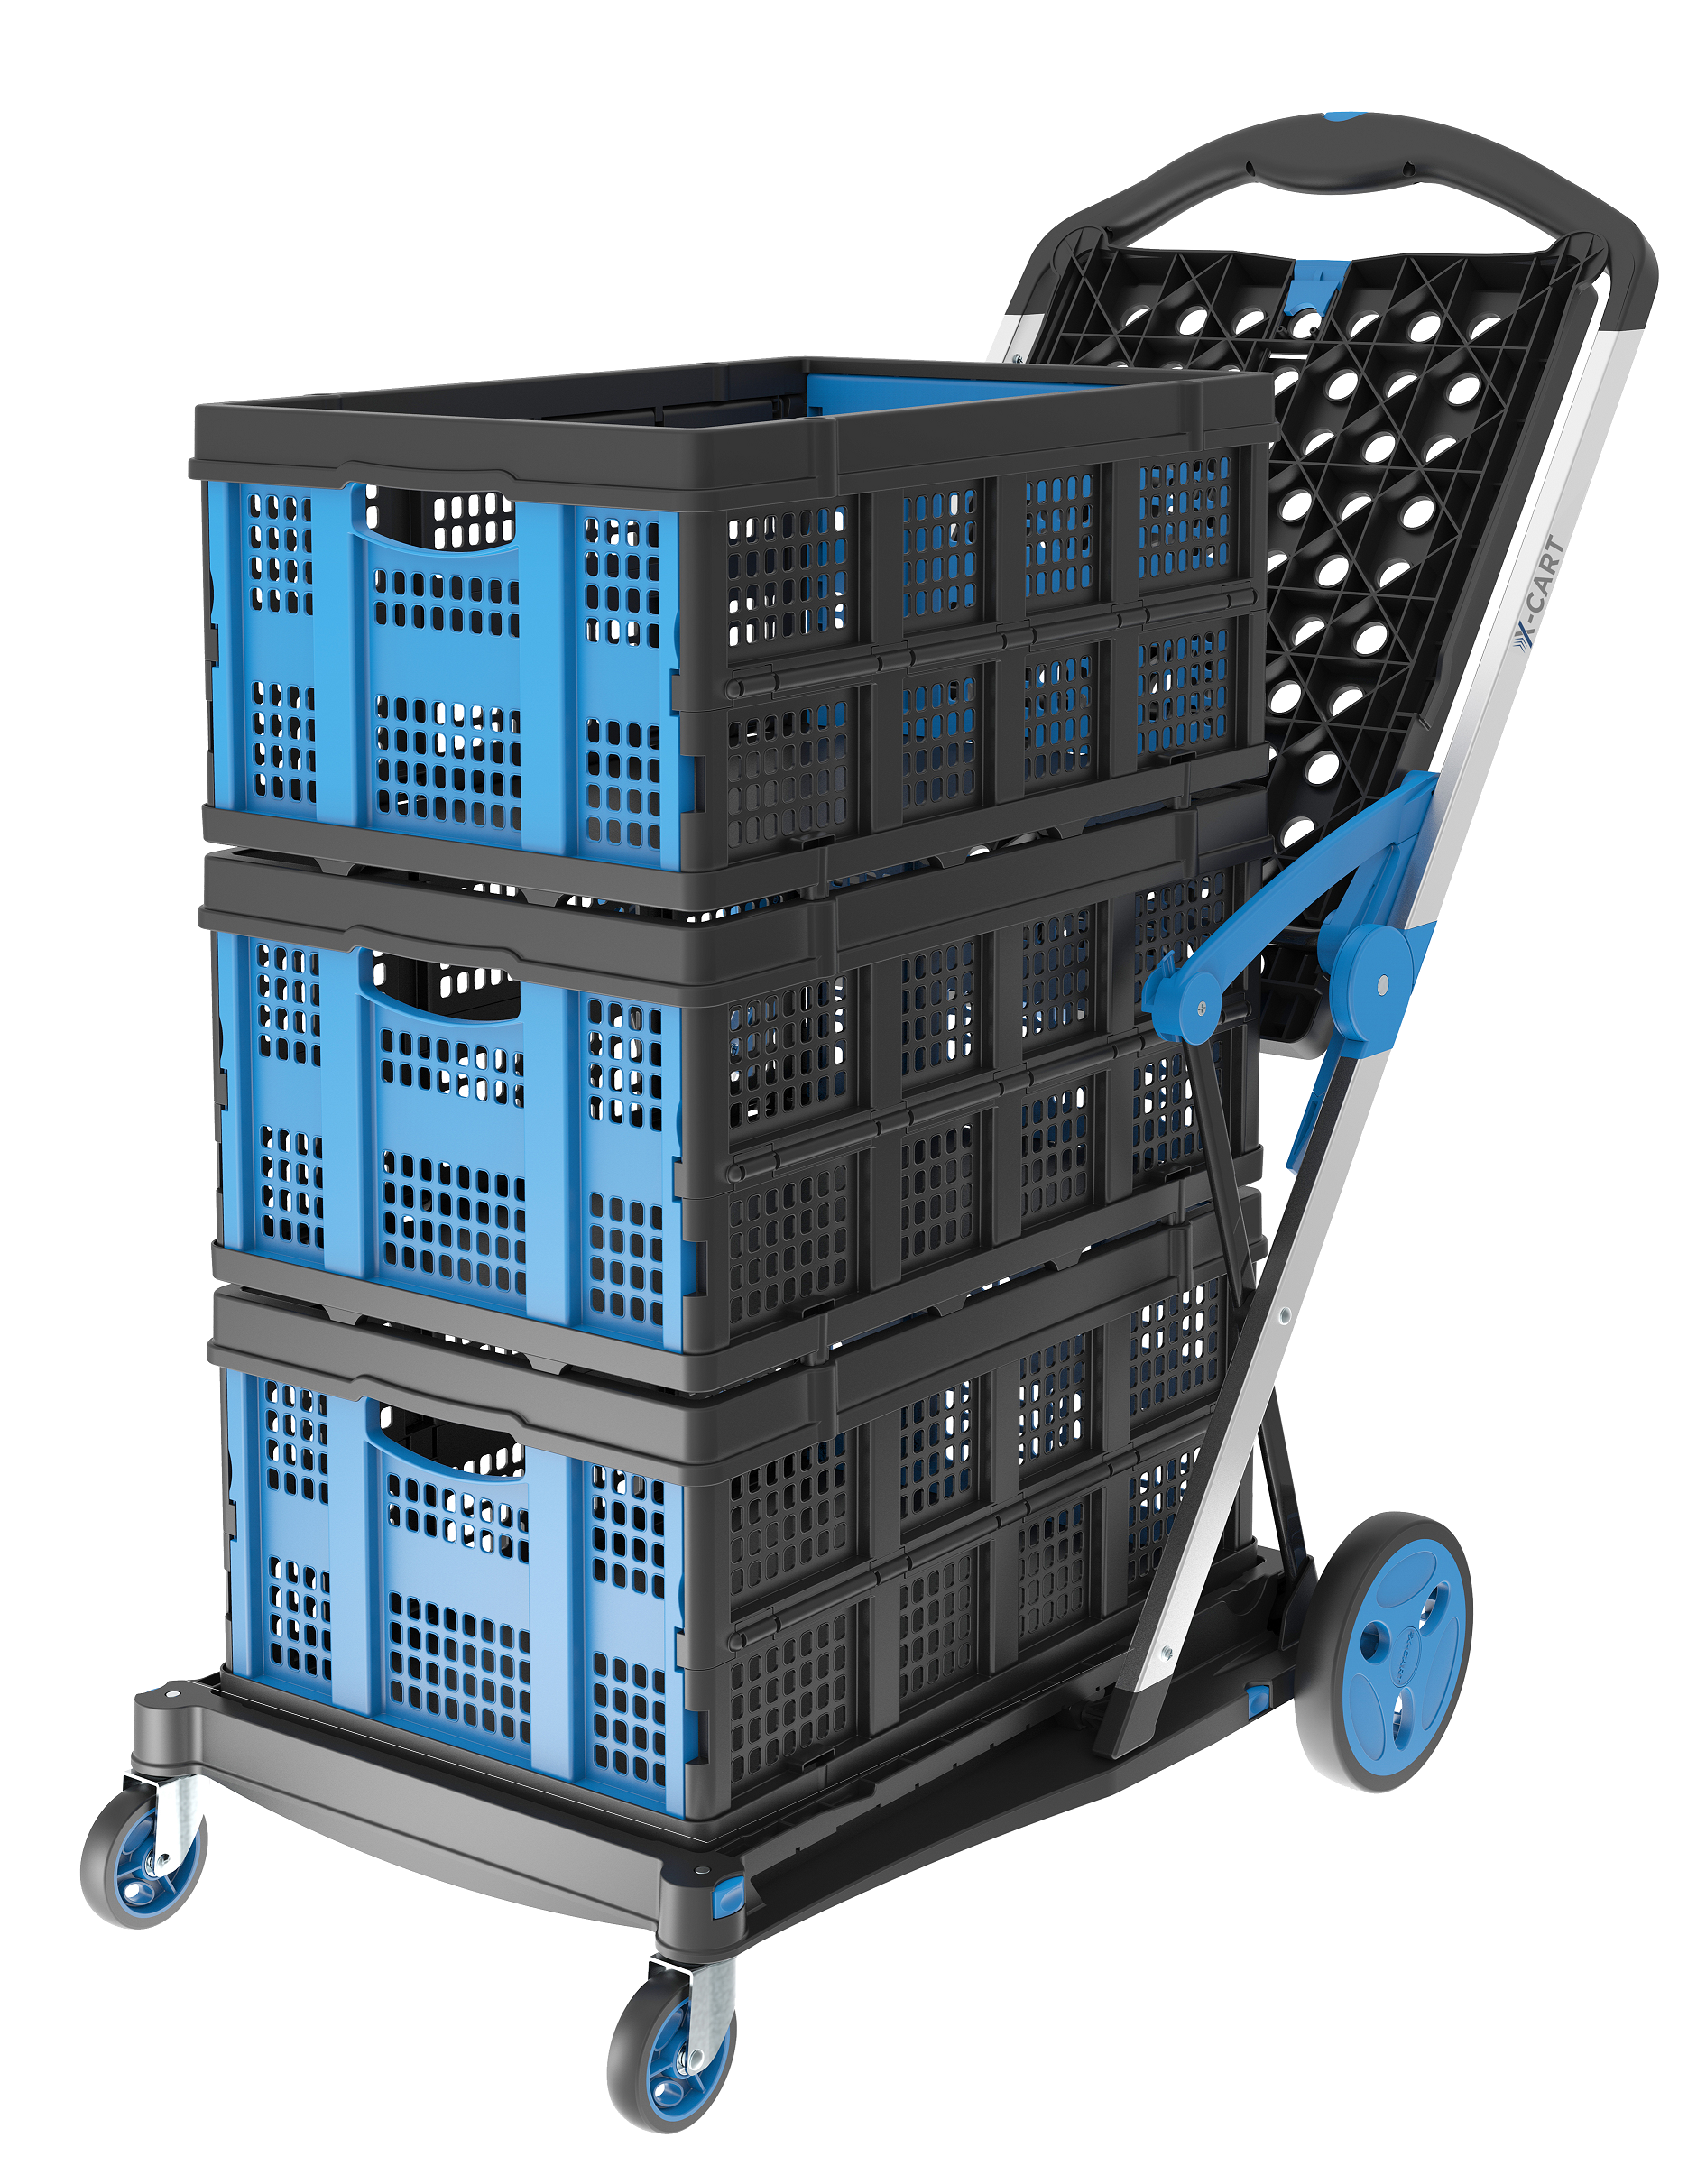 X-Cart With 3 Baskets (1) reduced